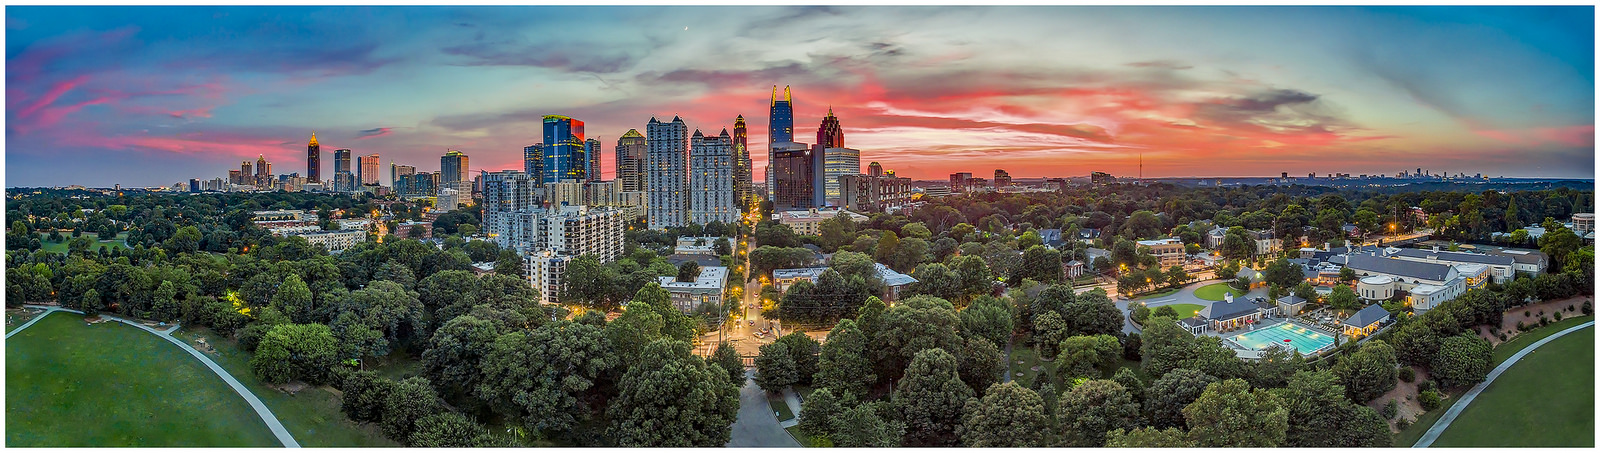 "A panoramic view of the skyline of Atlanta, with trees in the foreground and the sky turning pink from the sunset in the background. ""Fire in the Sky,"" by Richard Cawood. Licensed under CC BY-NC-ND 4.0."